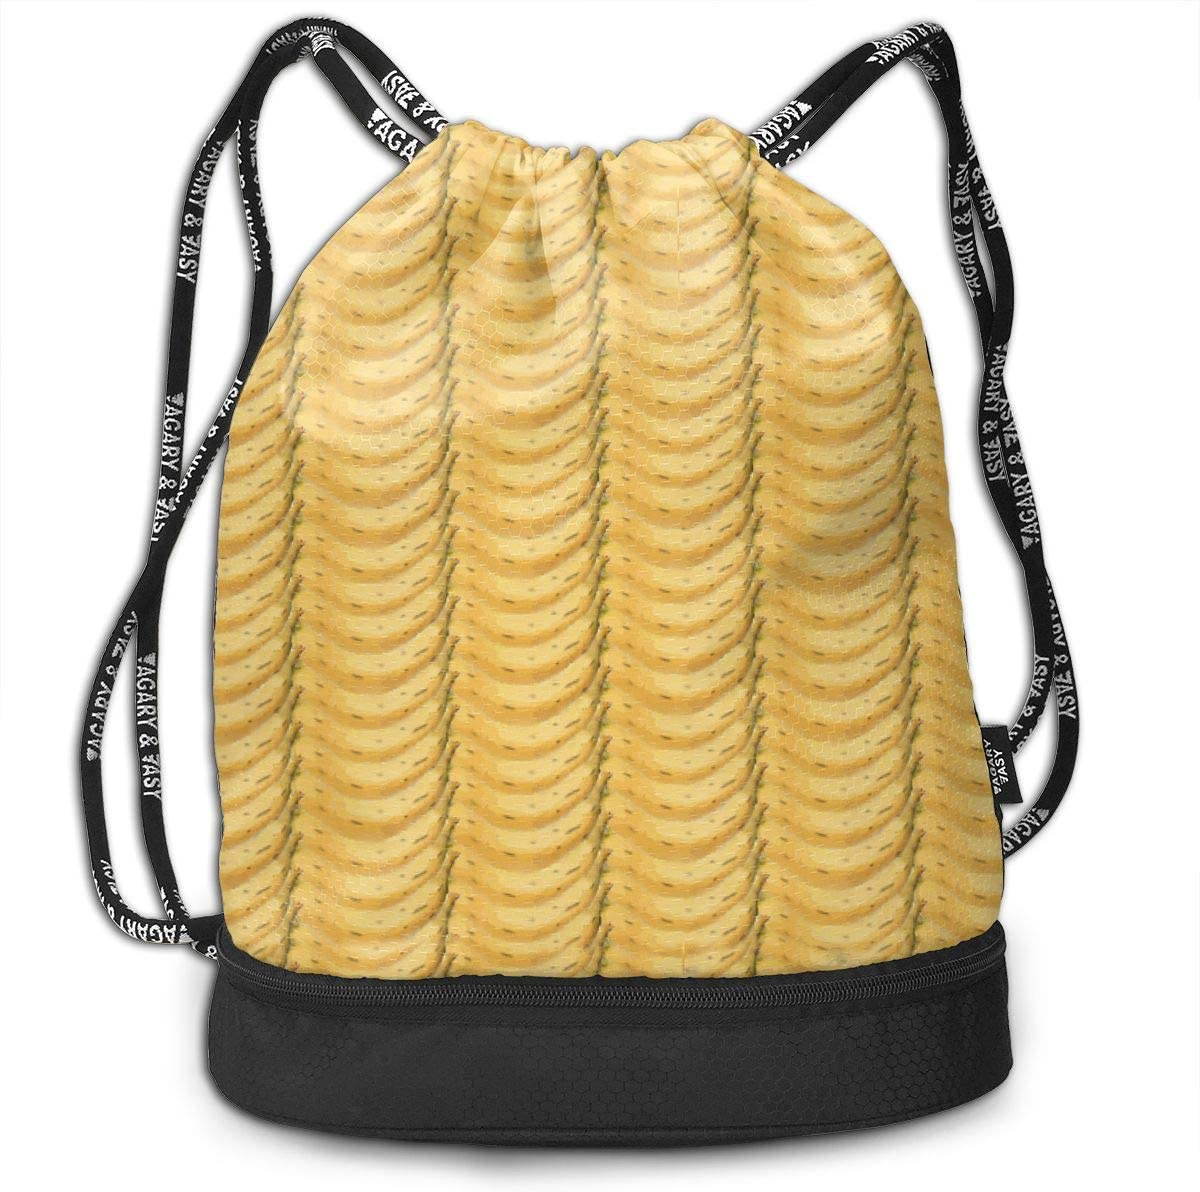 Monkey Business Banana Stripes Drawstring Backpack Sports Athletic Gym Cinch Sack String Storage Bags for Hiking Travel Beach